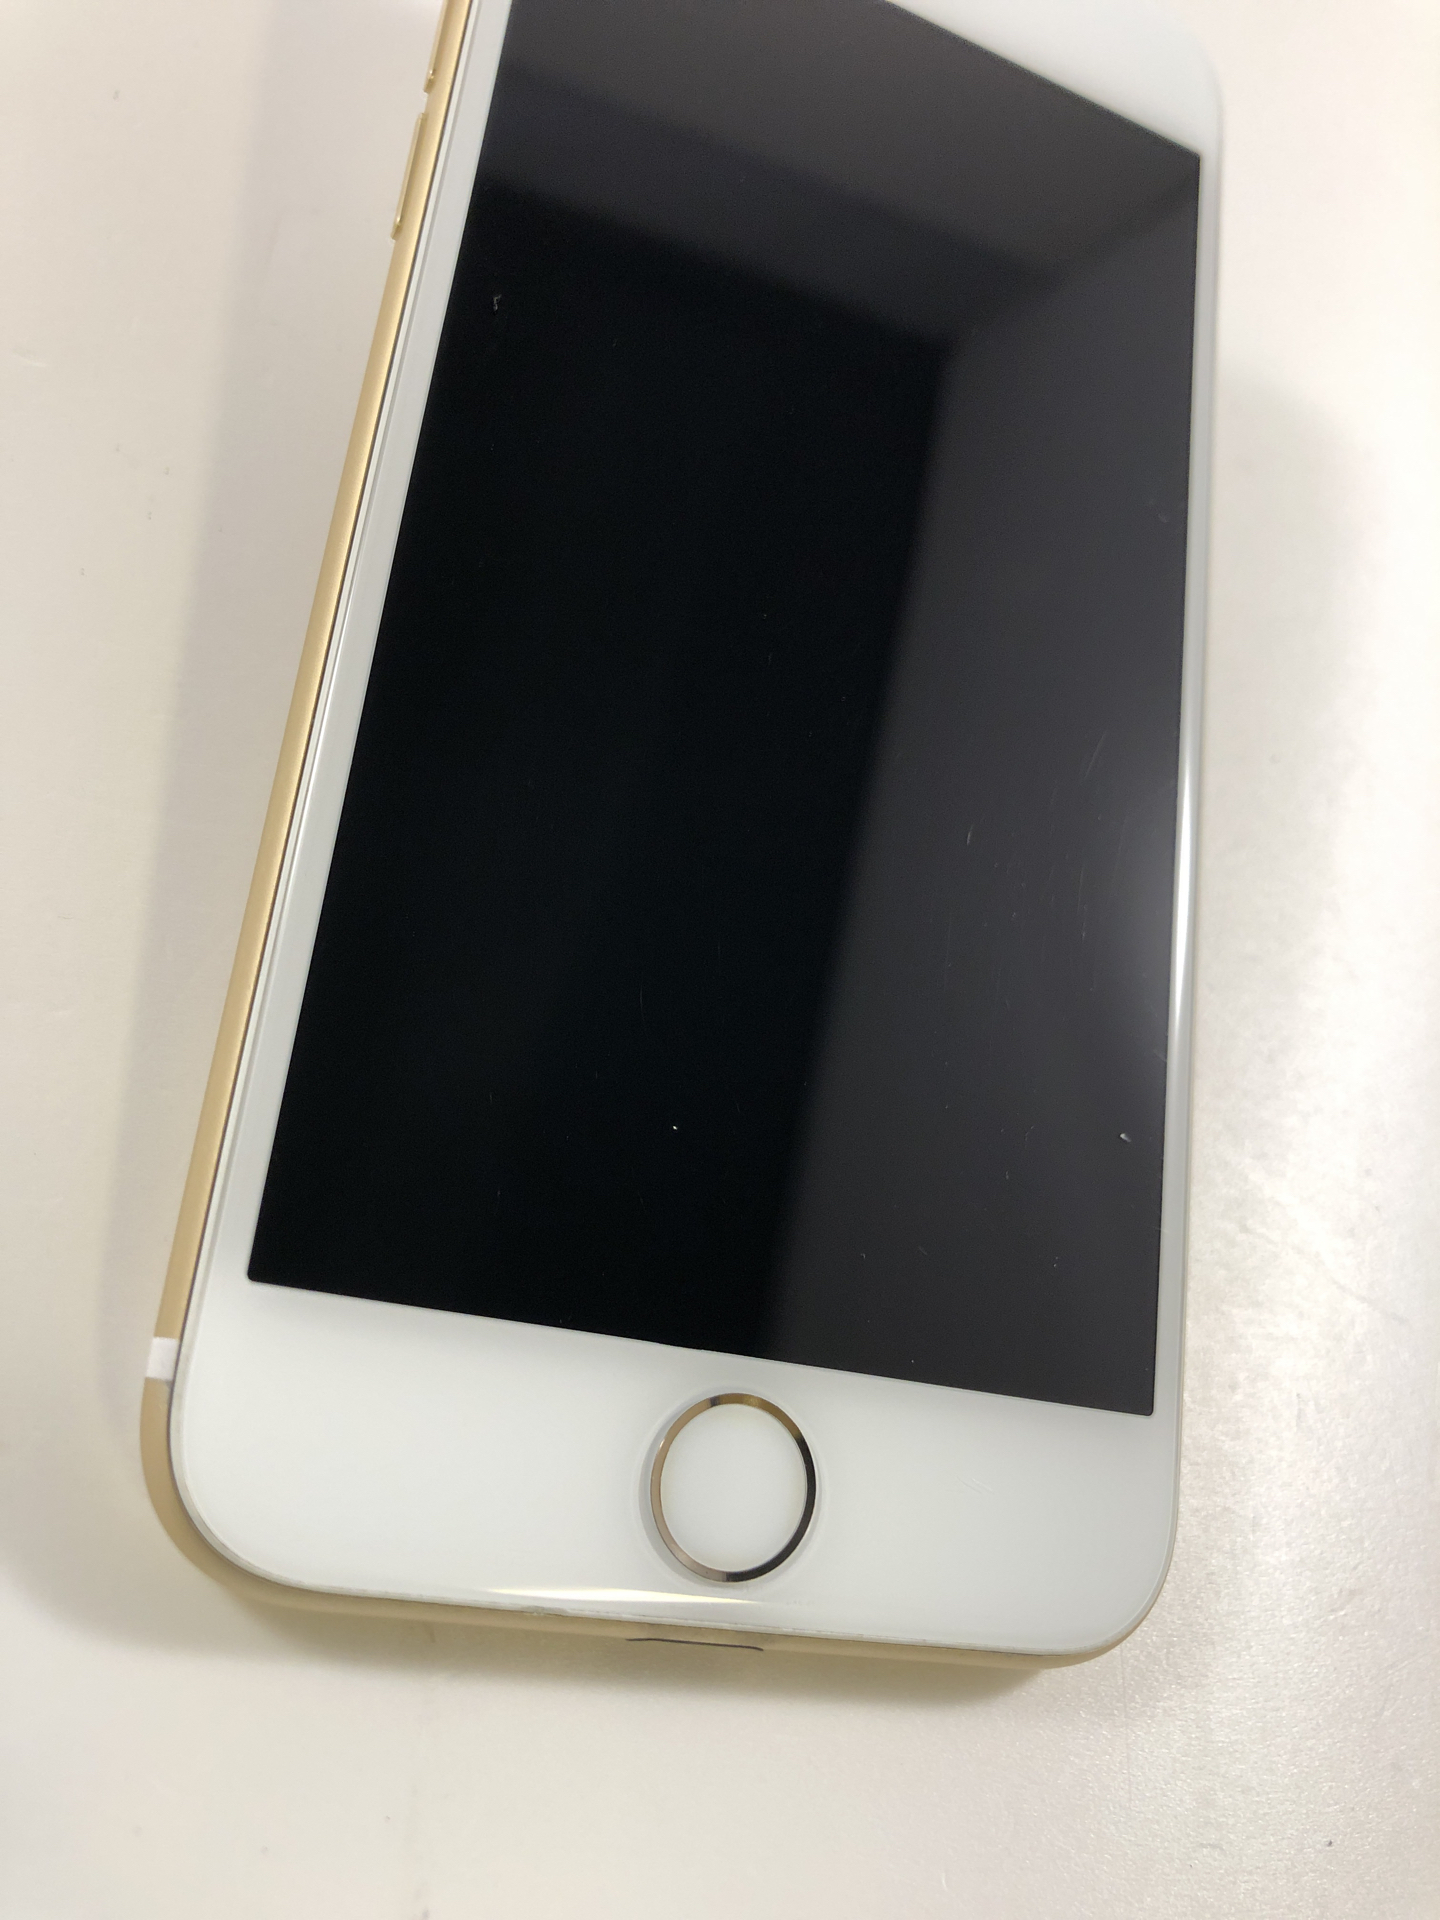 iPhone 7 32GB, 32GB, Gold, bild 3